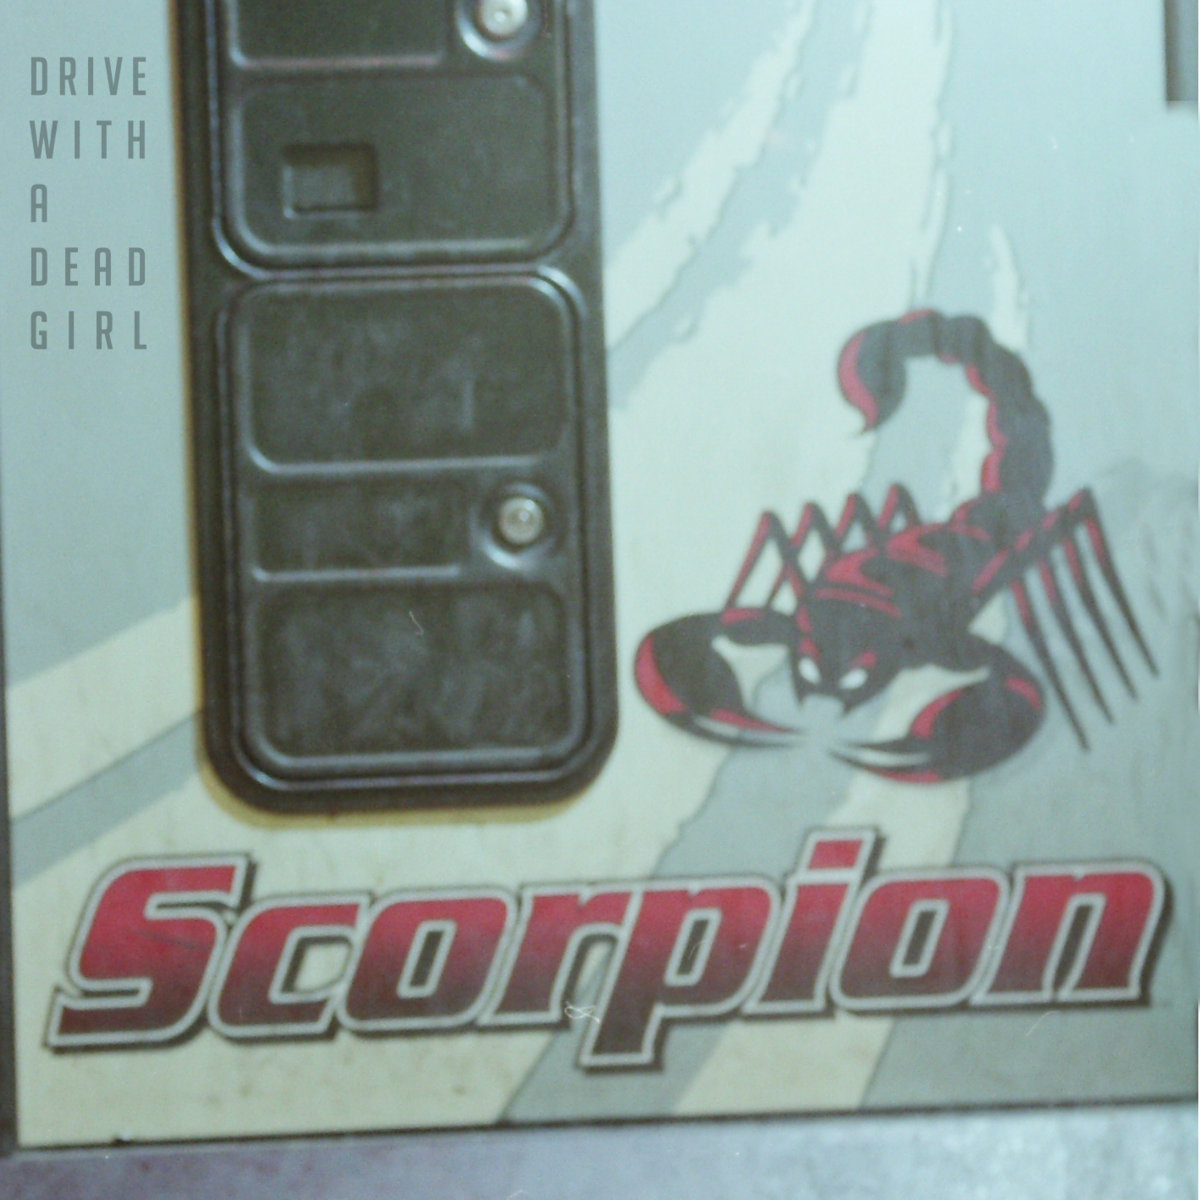 DRIVE WITH A DEAD GIRL - Scorpion